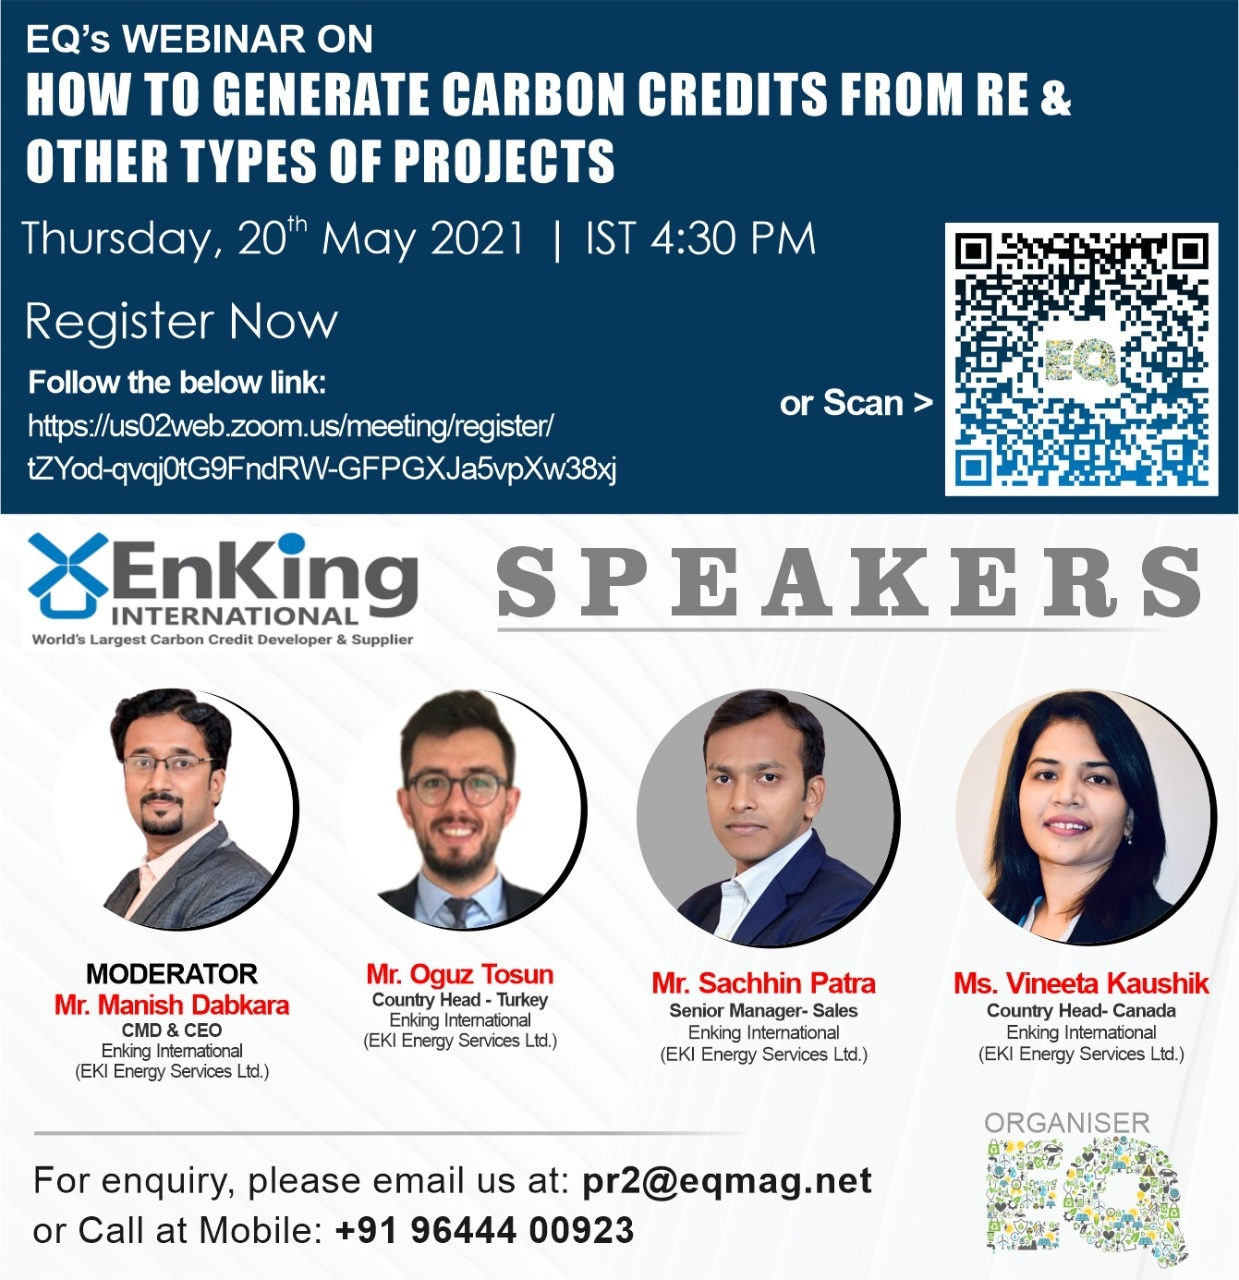 EQ Webinar on How to Generate Carbon Credits From RE & Other Types of Projects on Friday May 20th from 04:30 PM Onwards….Register Now !!!